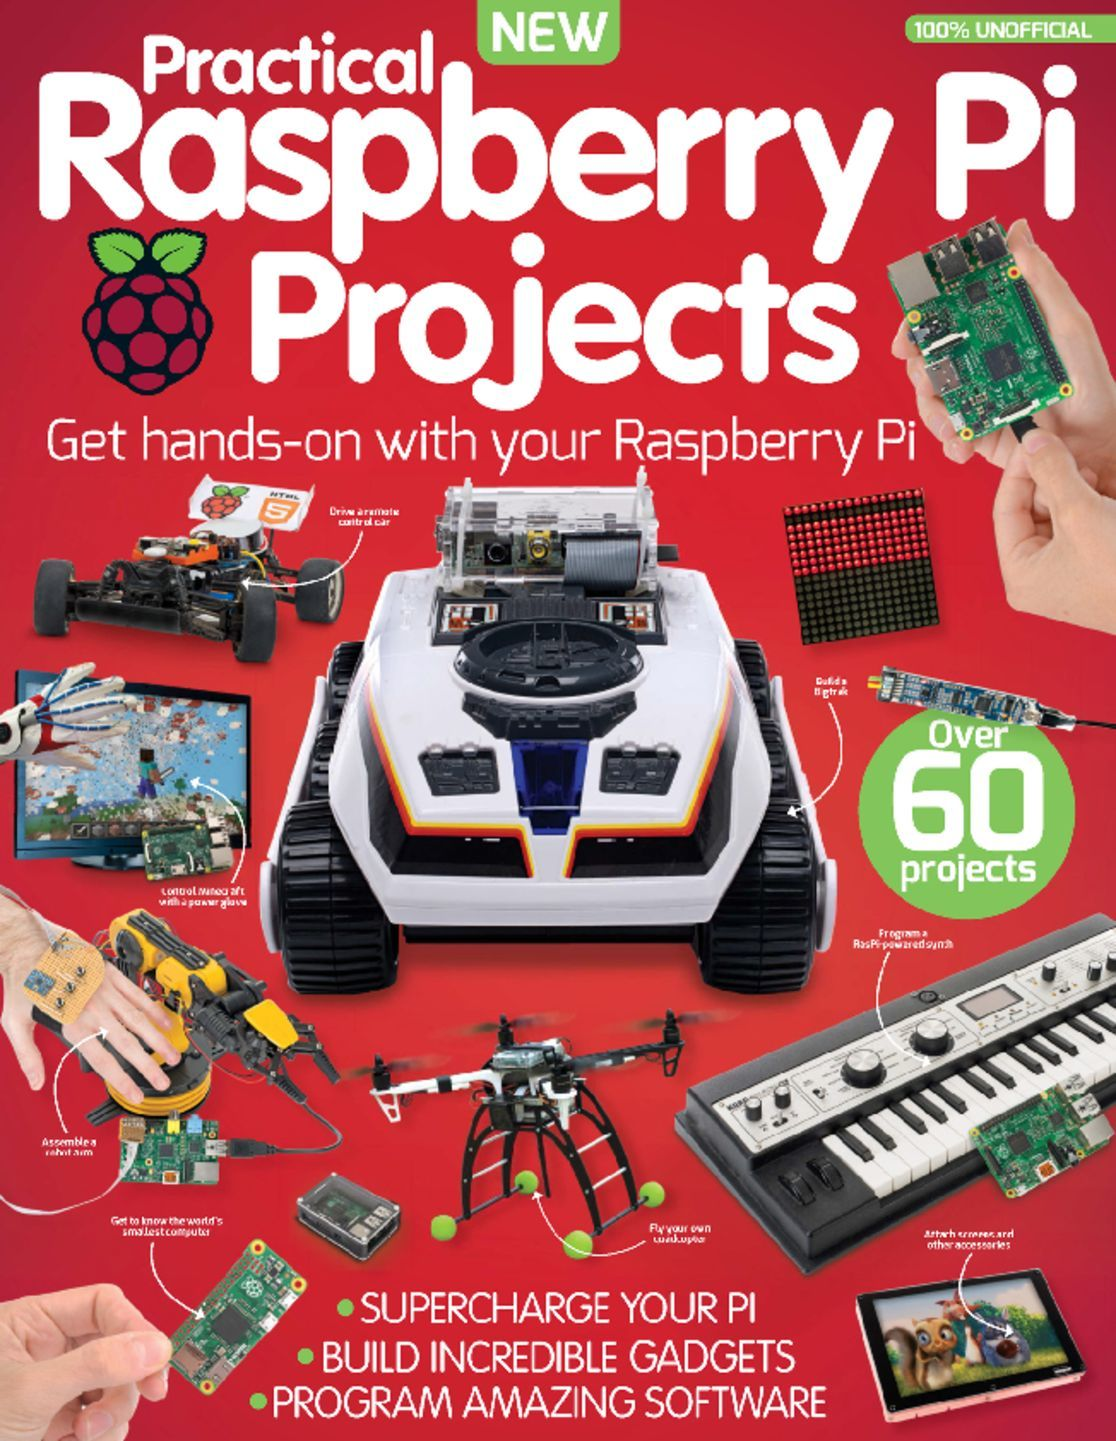 Practical Raspberry Pi Projects Digital